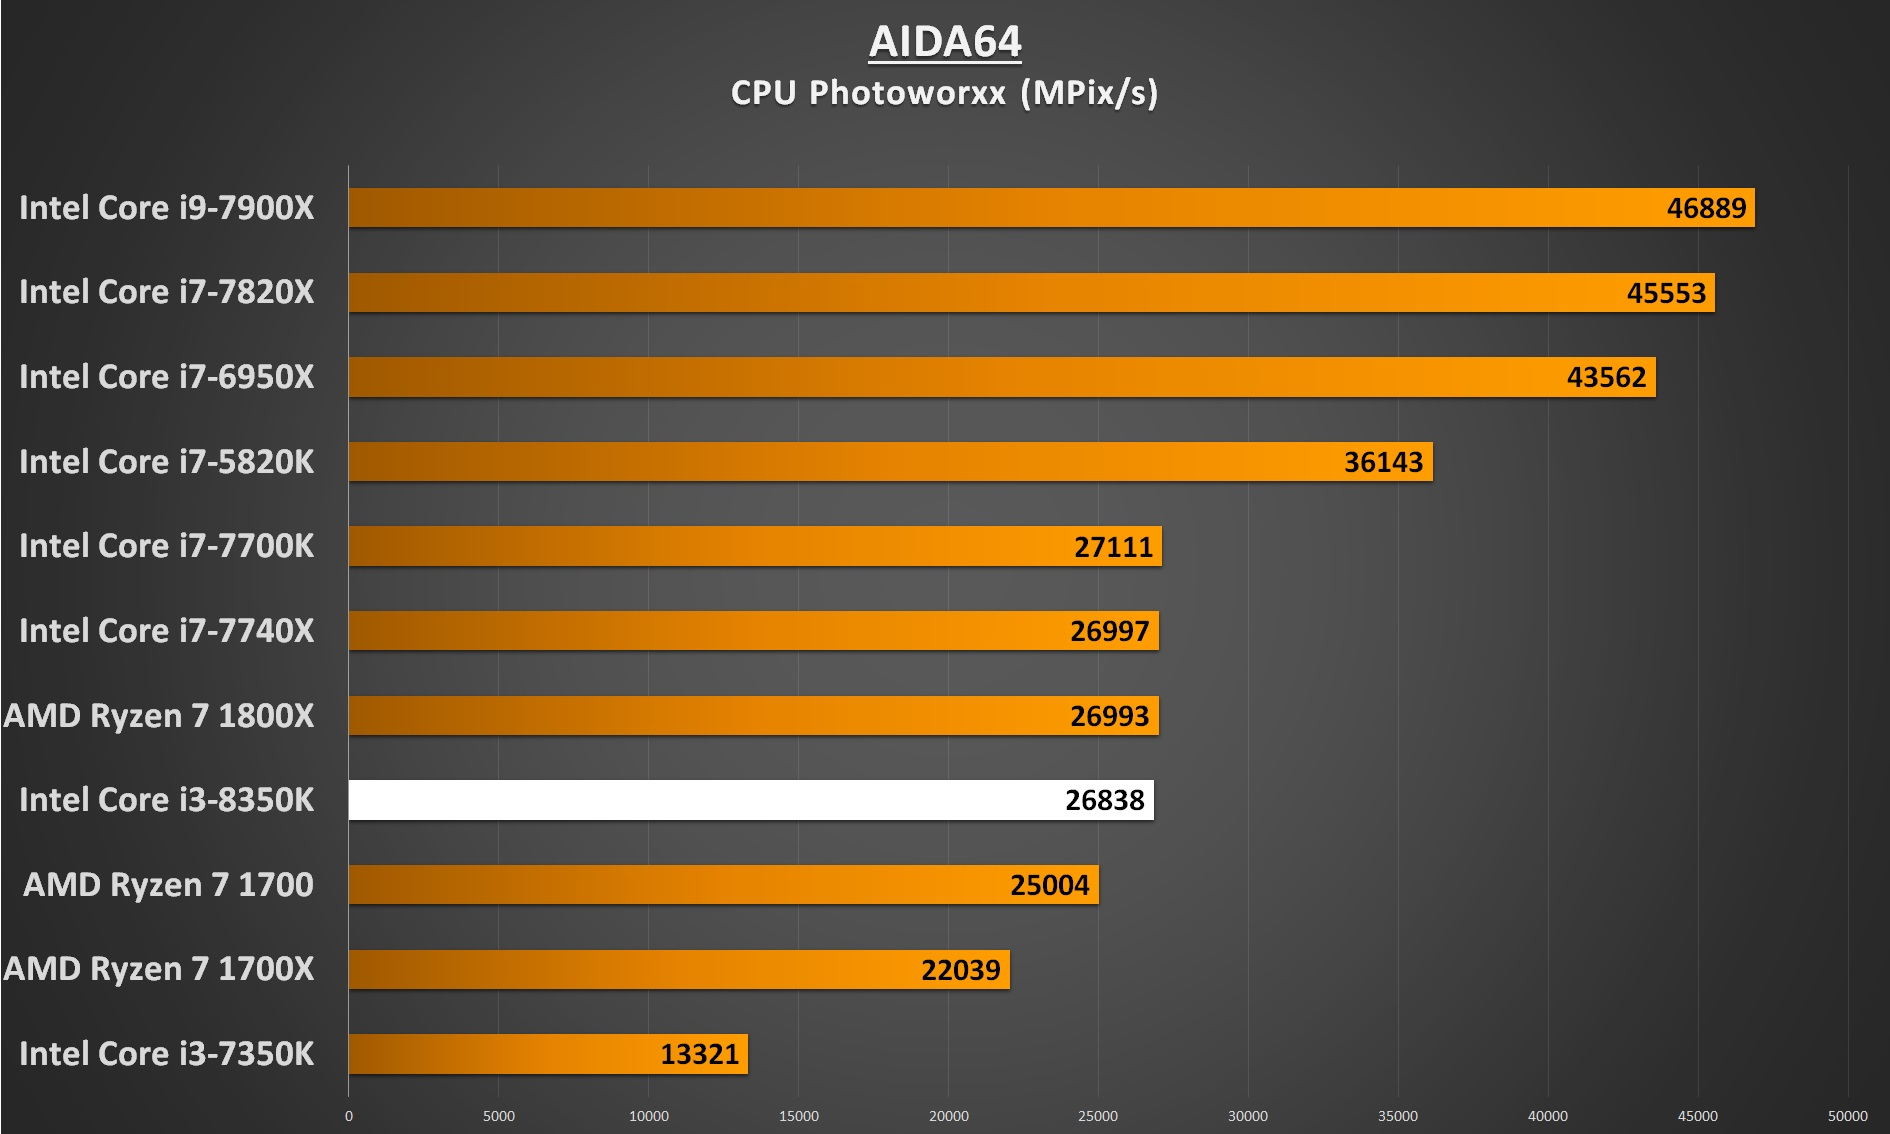 Intel Core i3-8350 Performance - AIDA64 CPU Photoworxx